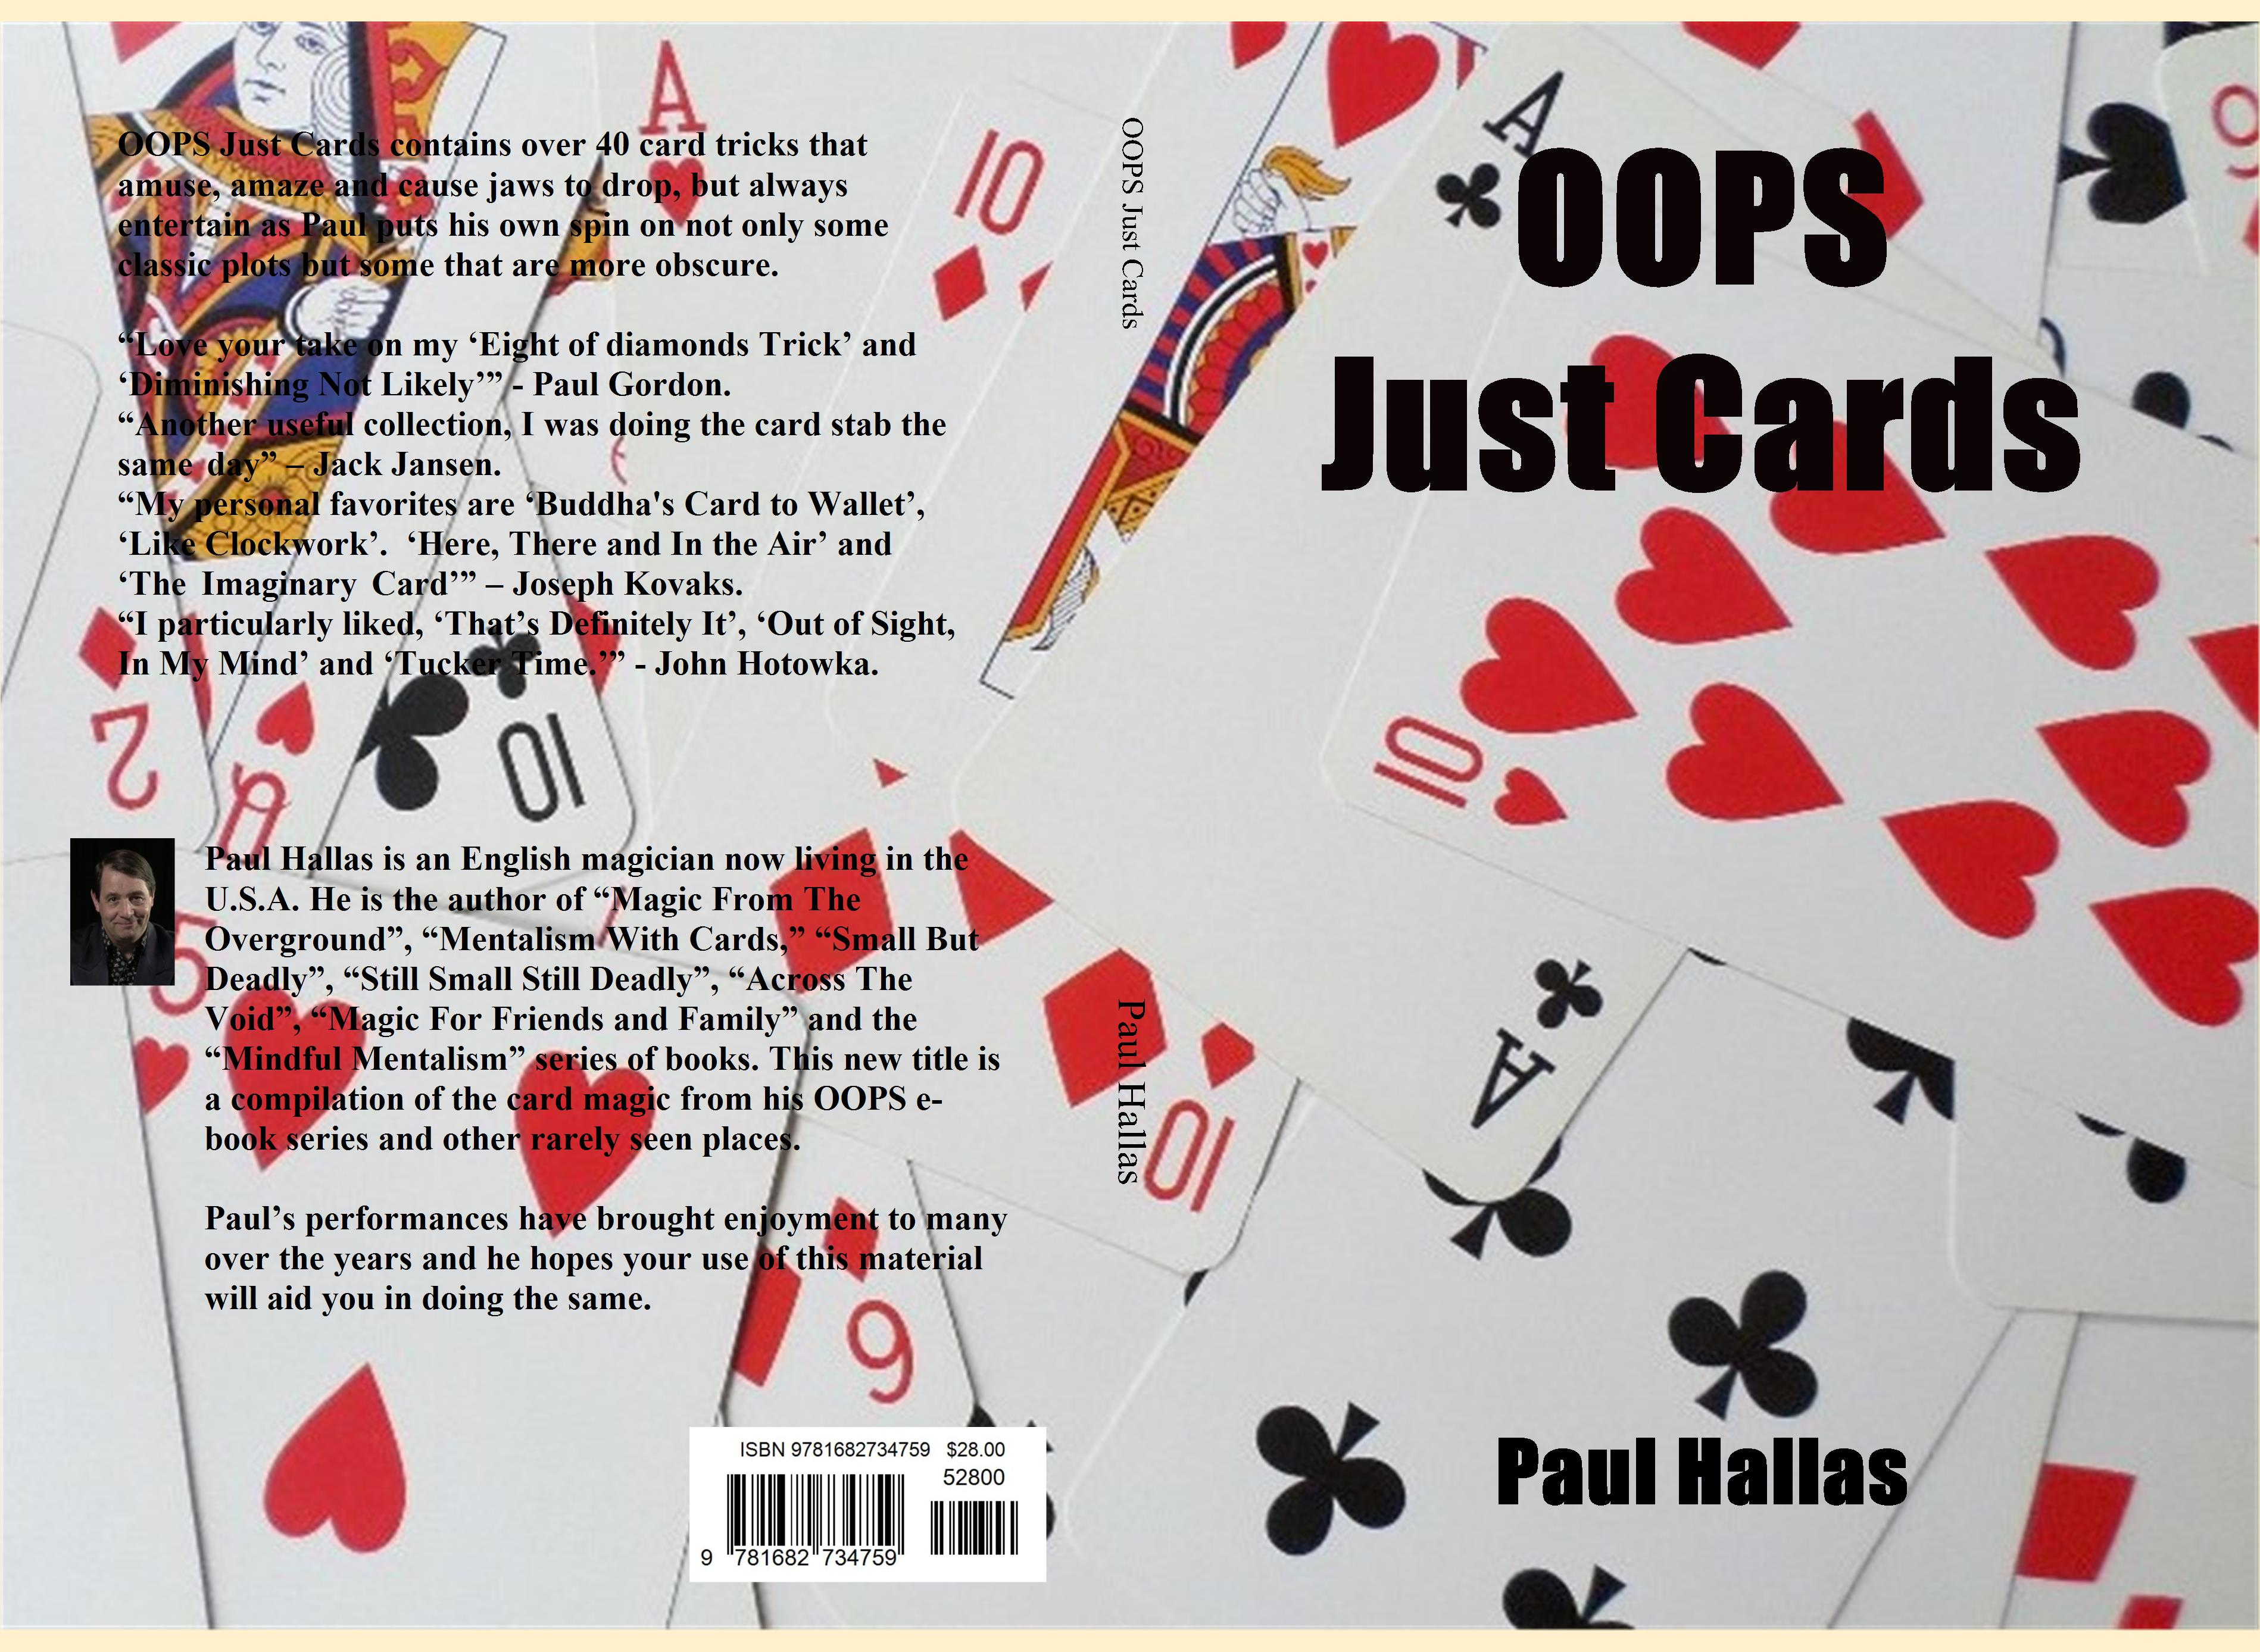 OOPS Just Cards cover image